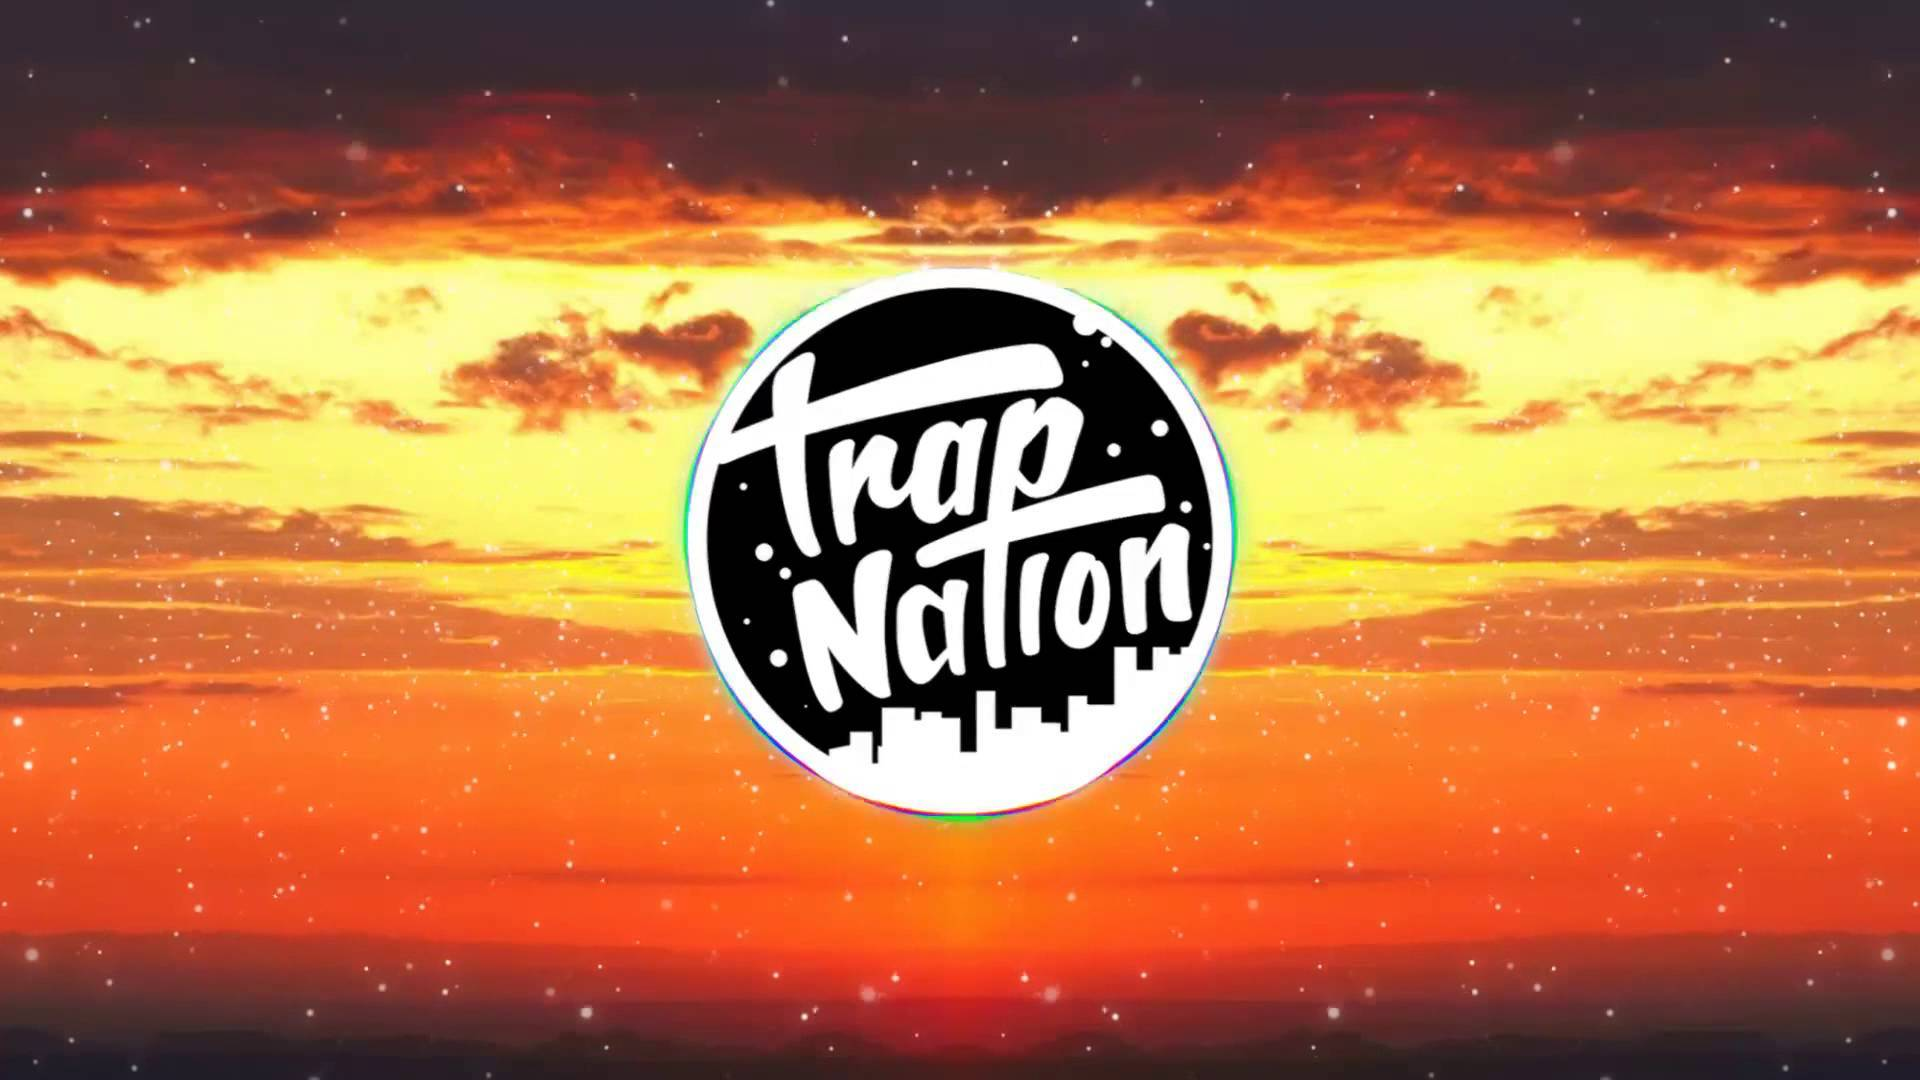 Trap Nation Wallpaper Hd 54 Fondos de pantalla grupales - Trap Nation Wallpaper